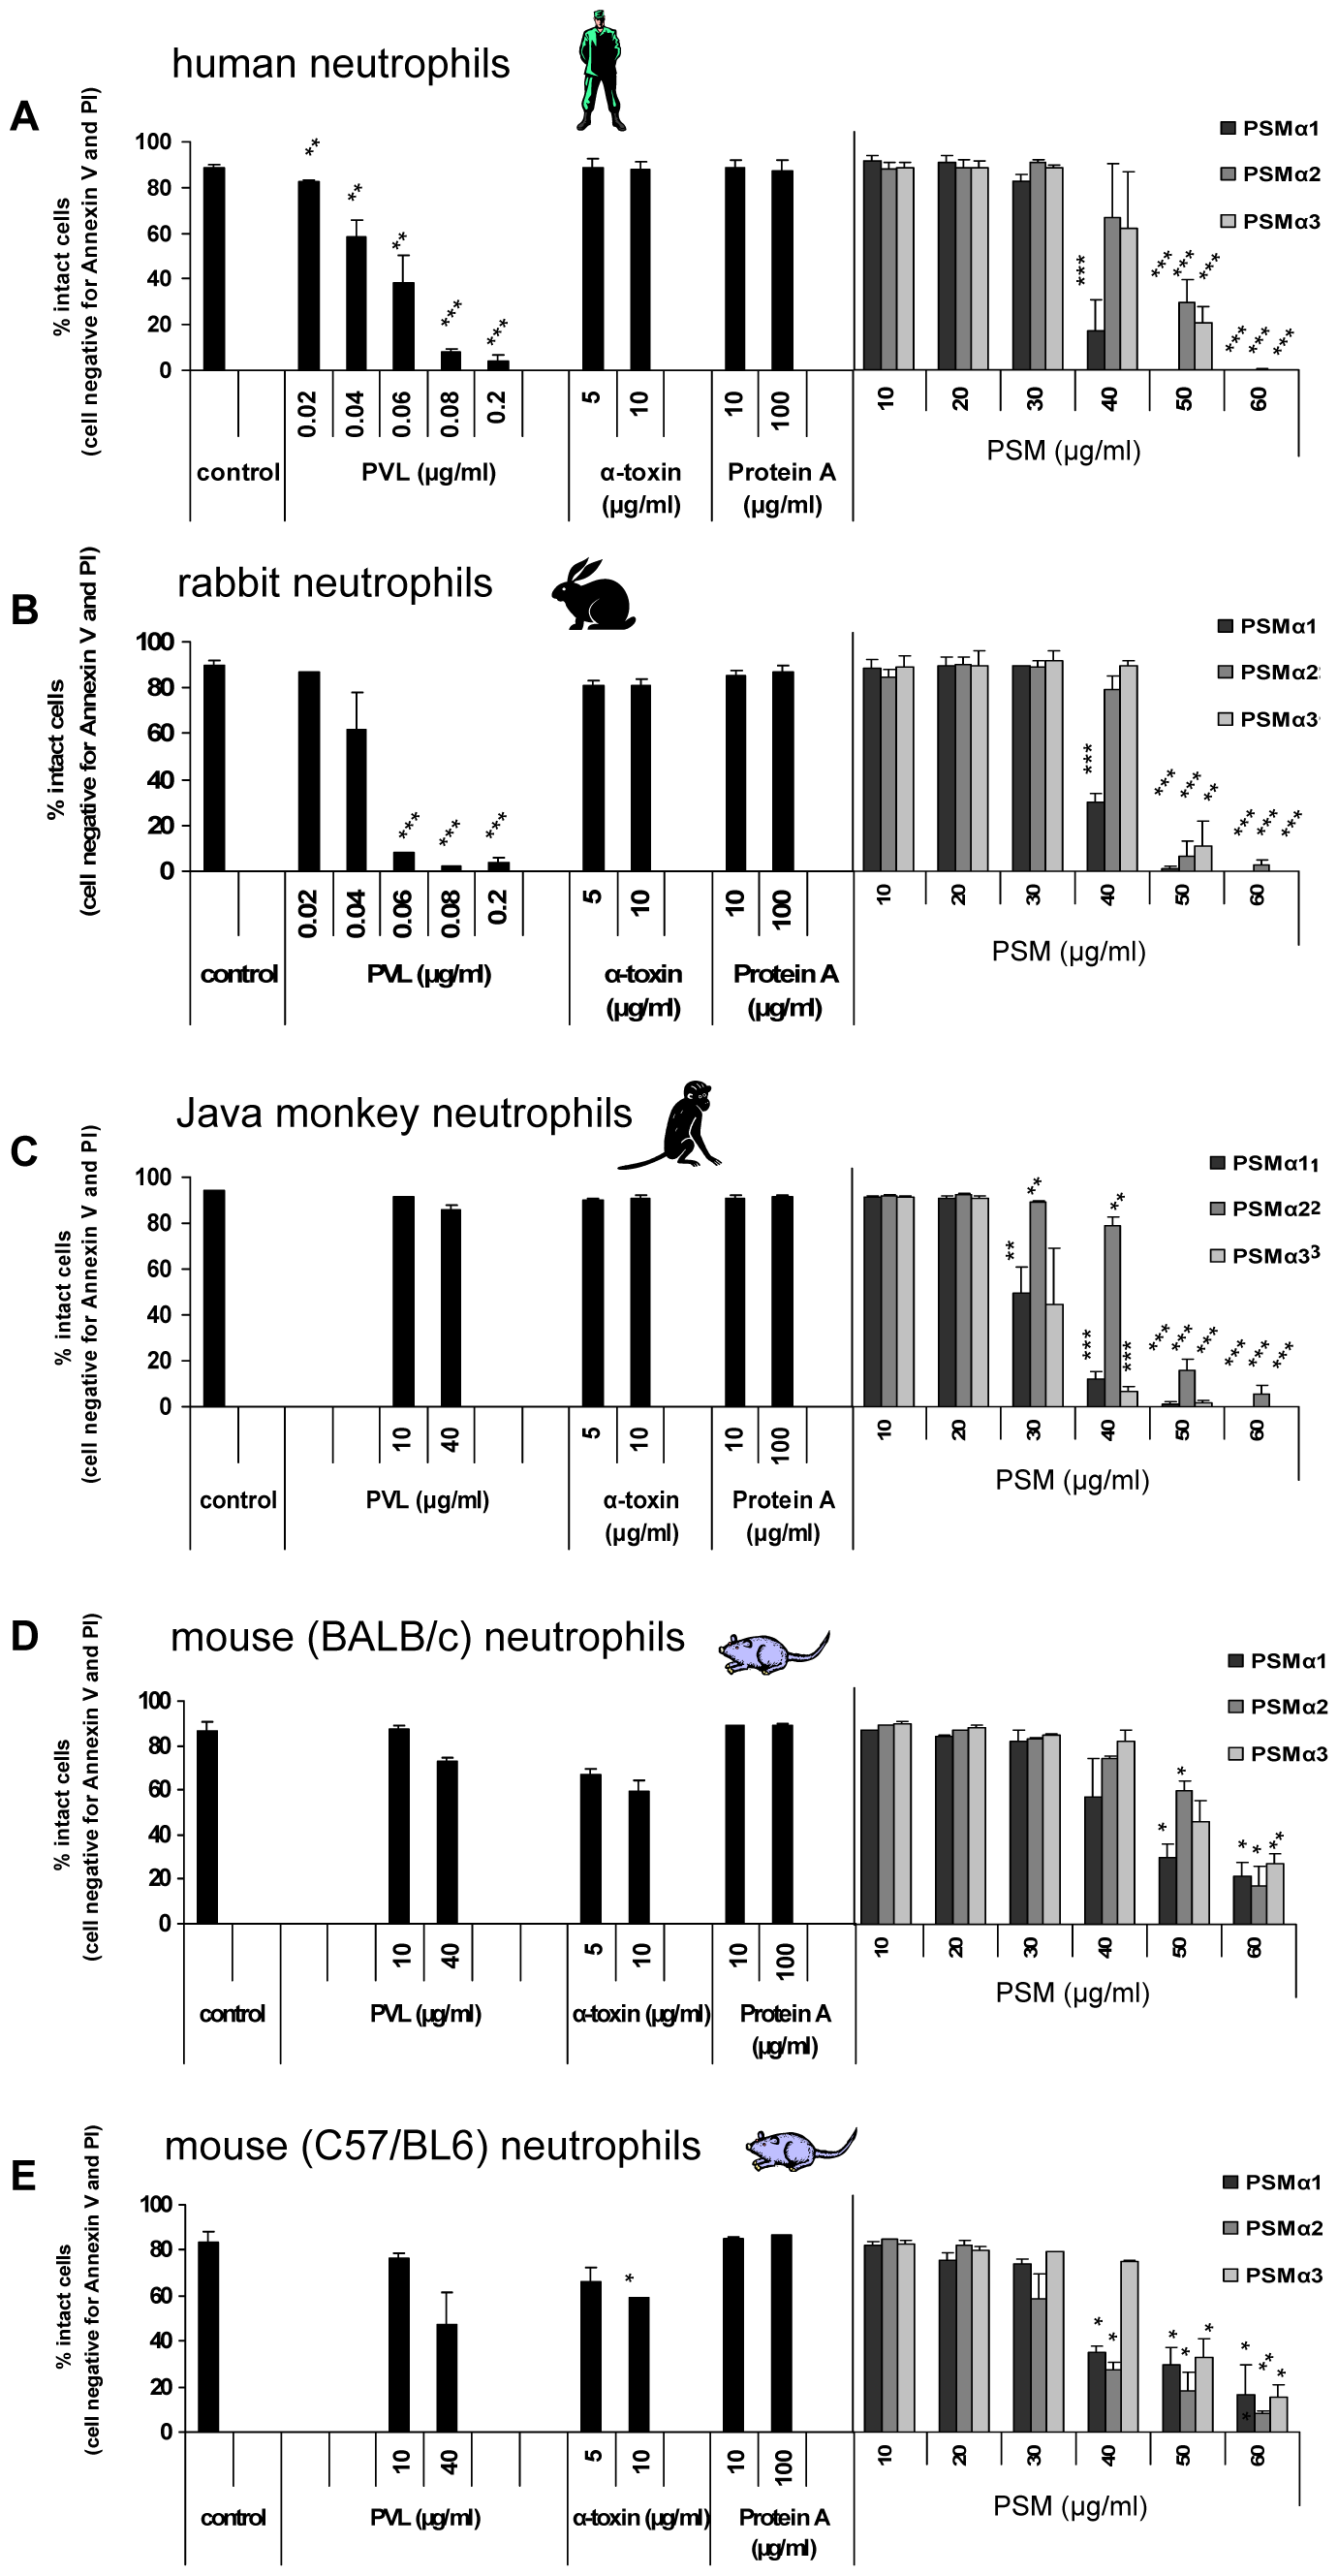 The cytolytic effect of purified <i>S.aureus</i> virulence factors on neutrophils from different species.